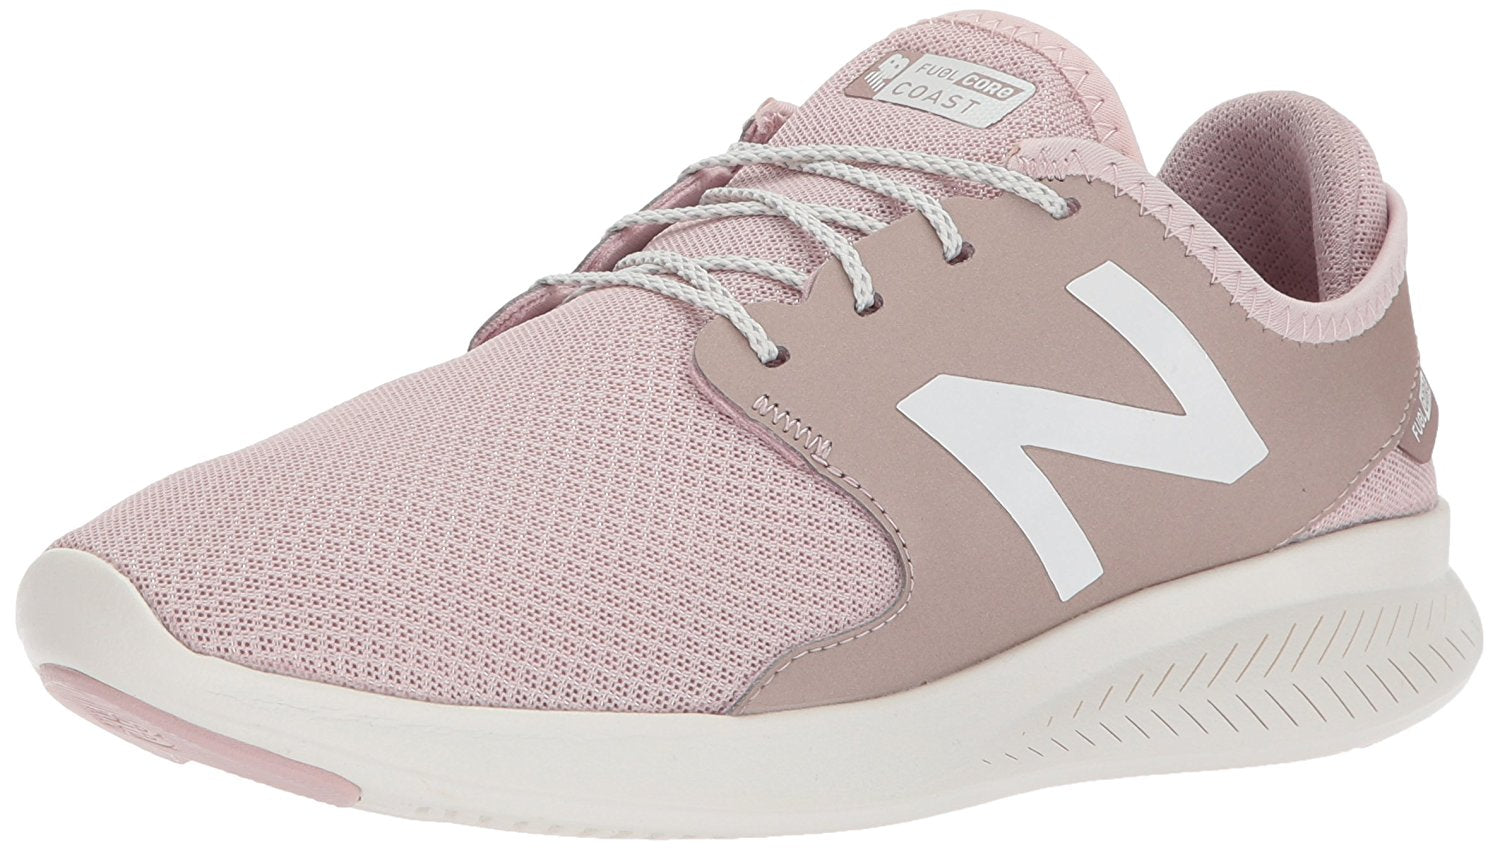 New Balance Women's Coast V3 Running-Shoes